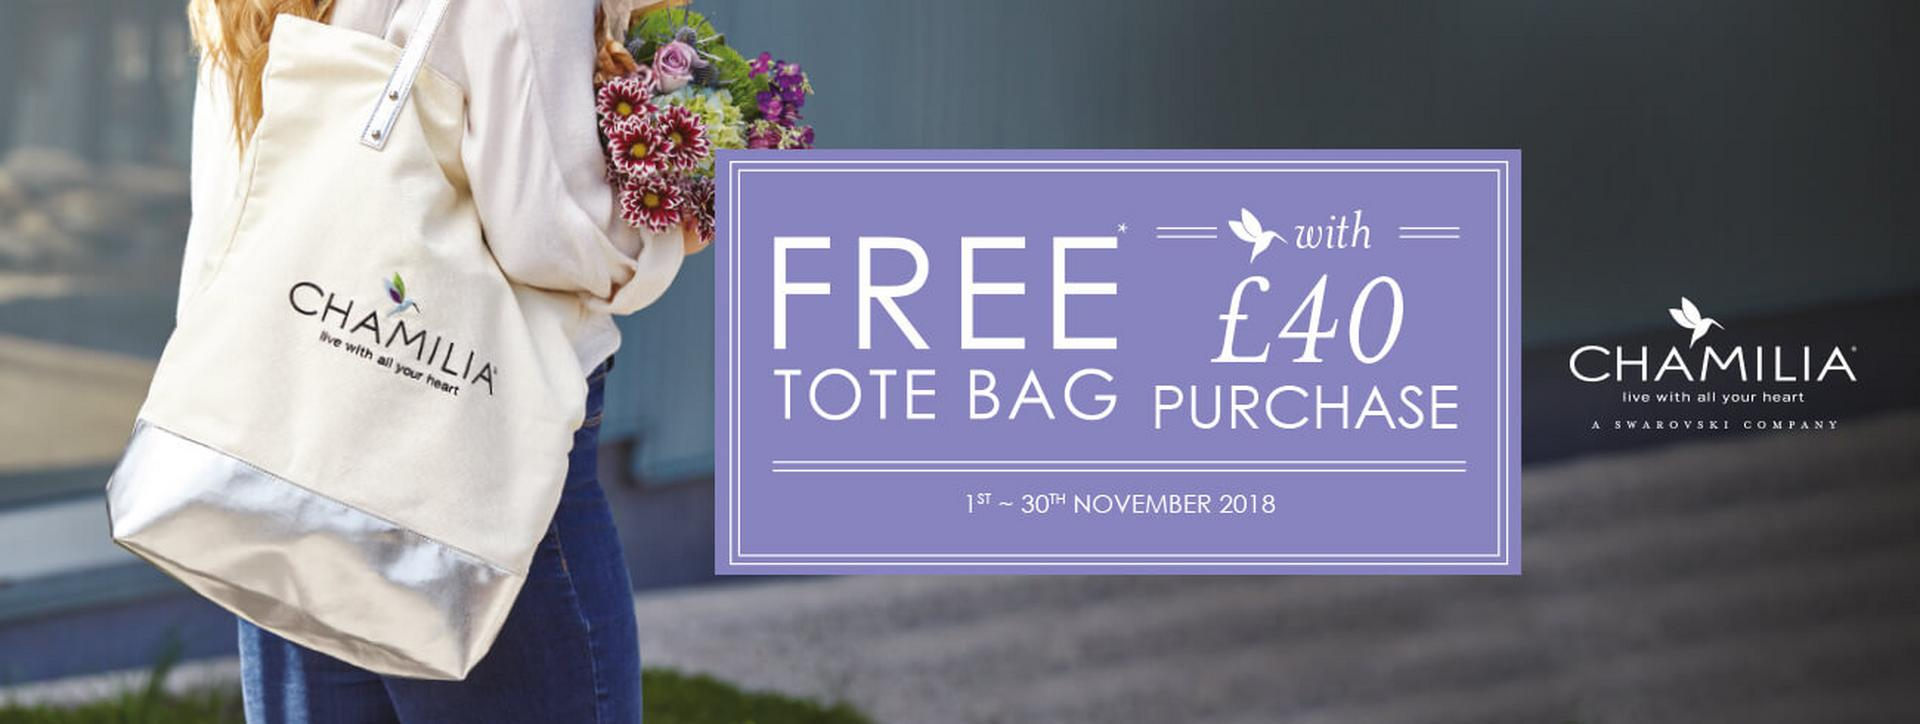 Get a FREE tote bag with any £40 purchase on Chamilia at Ernest Jones